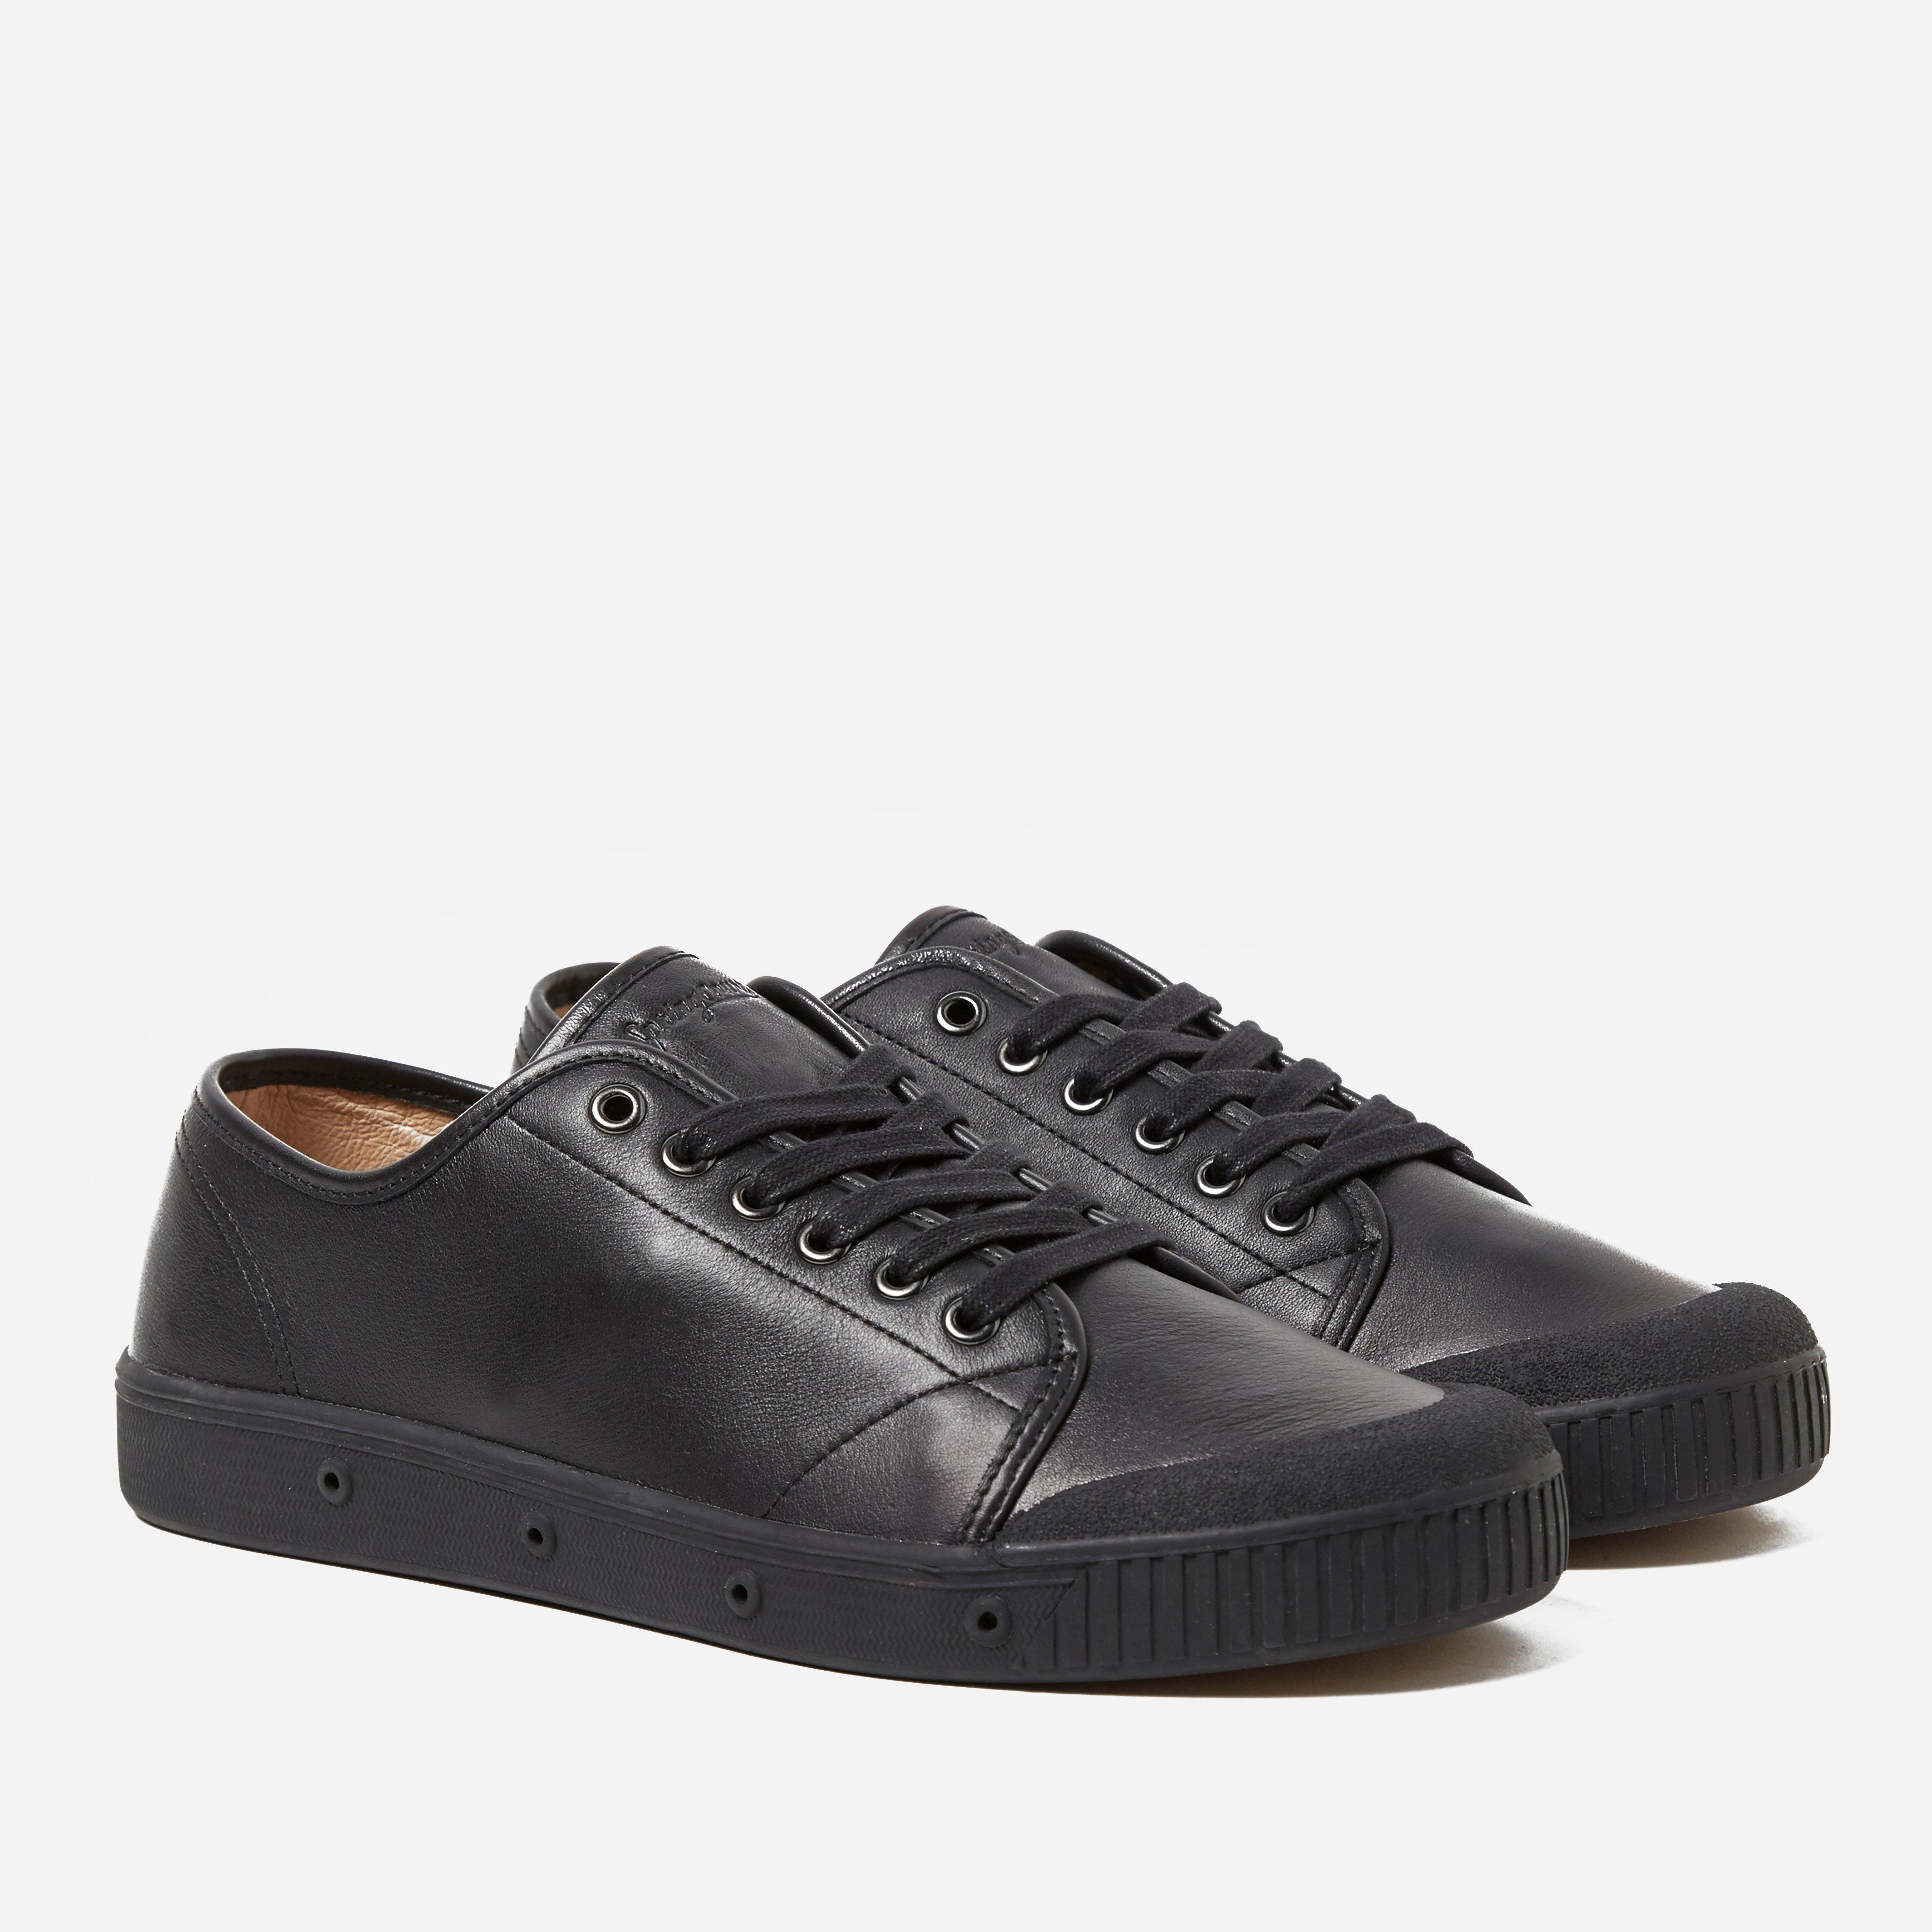 Spring Court G2 Leather